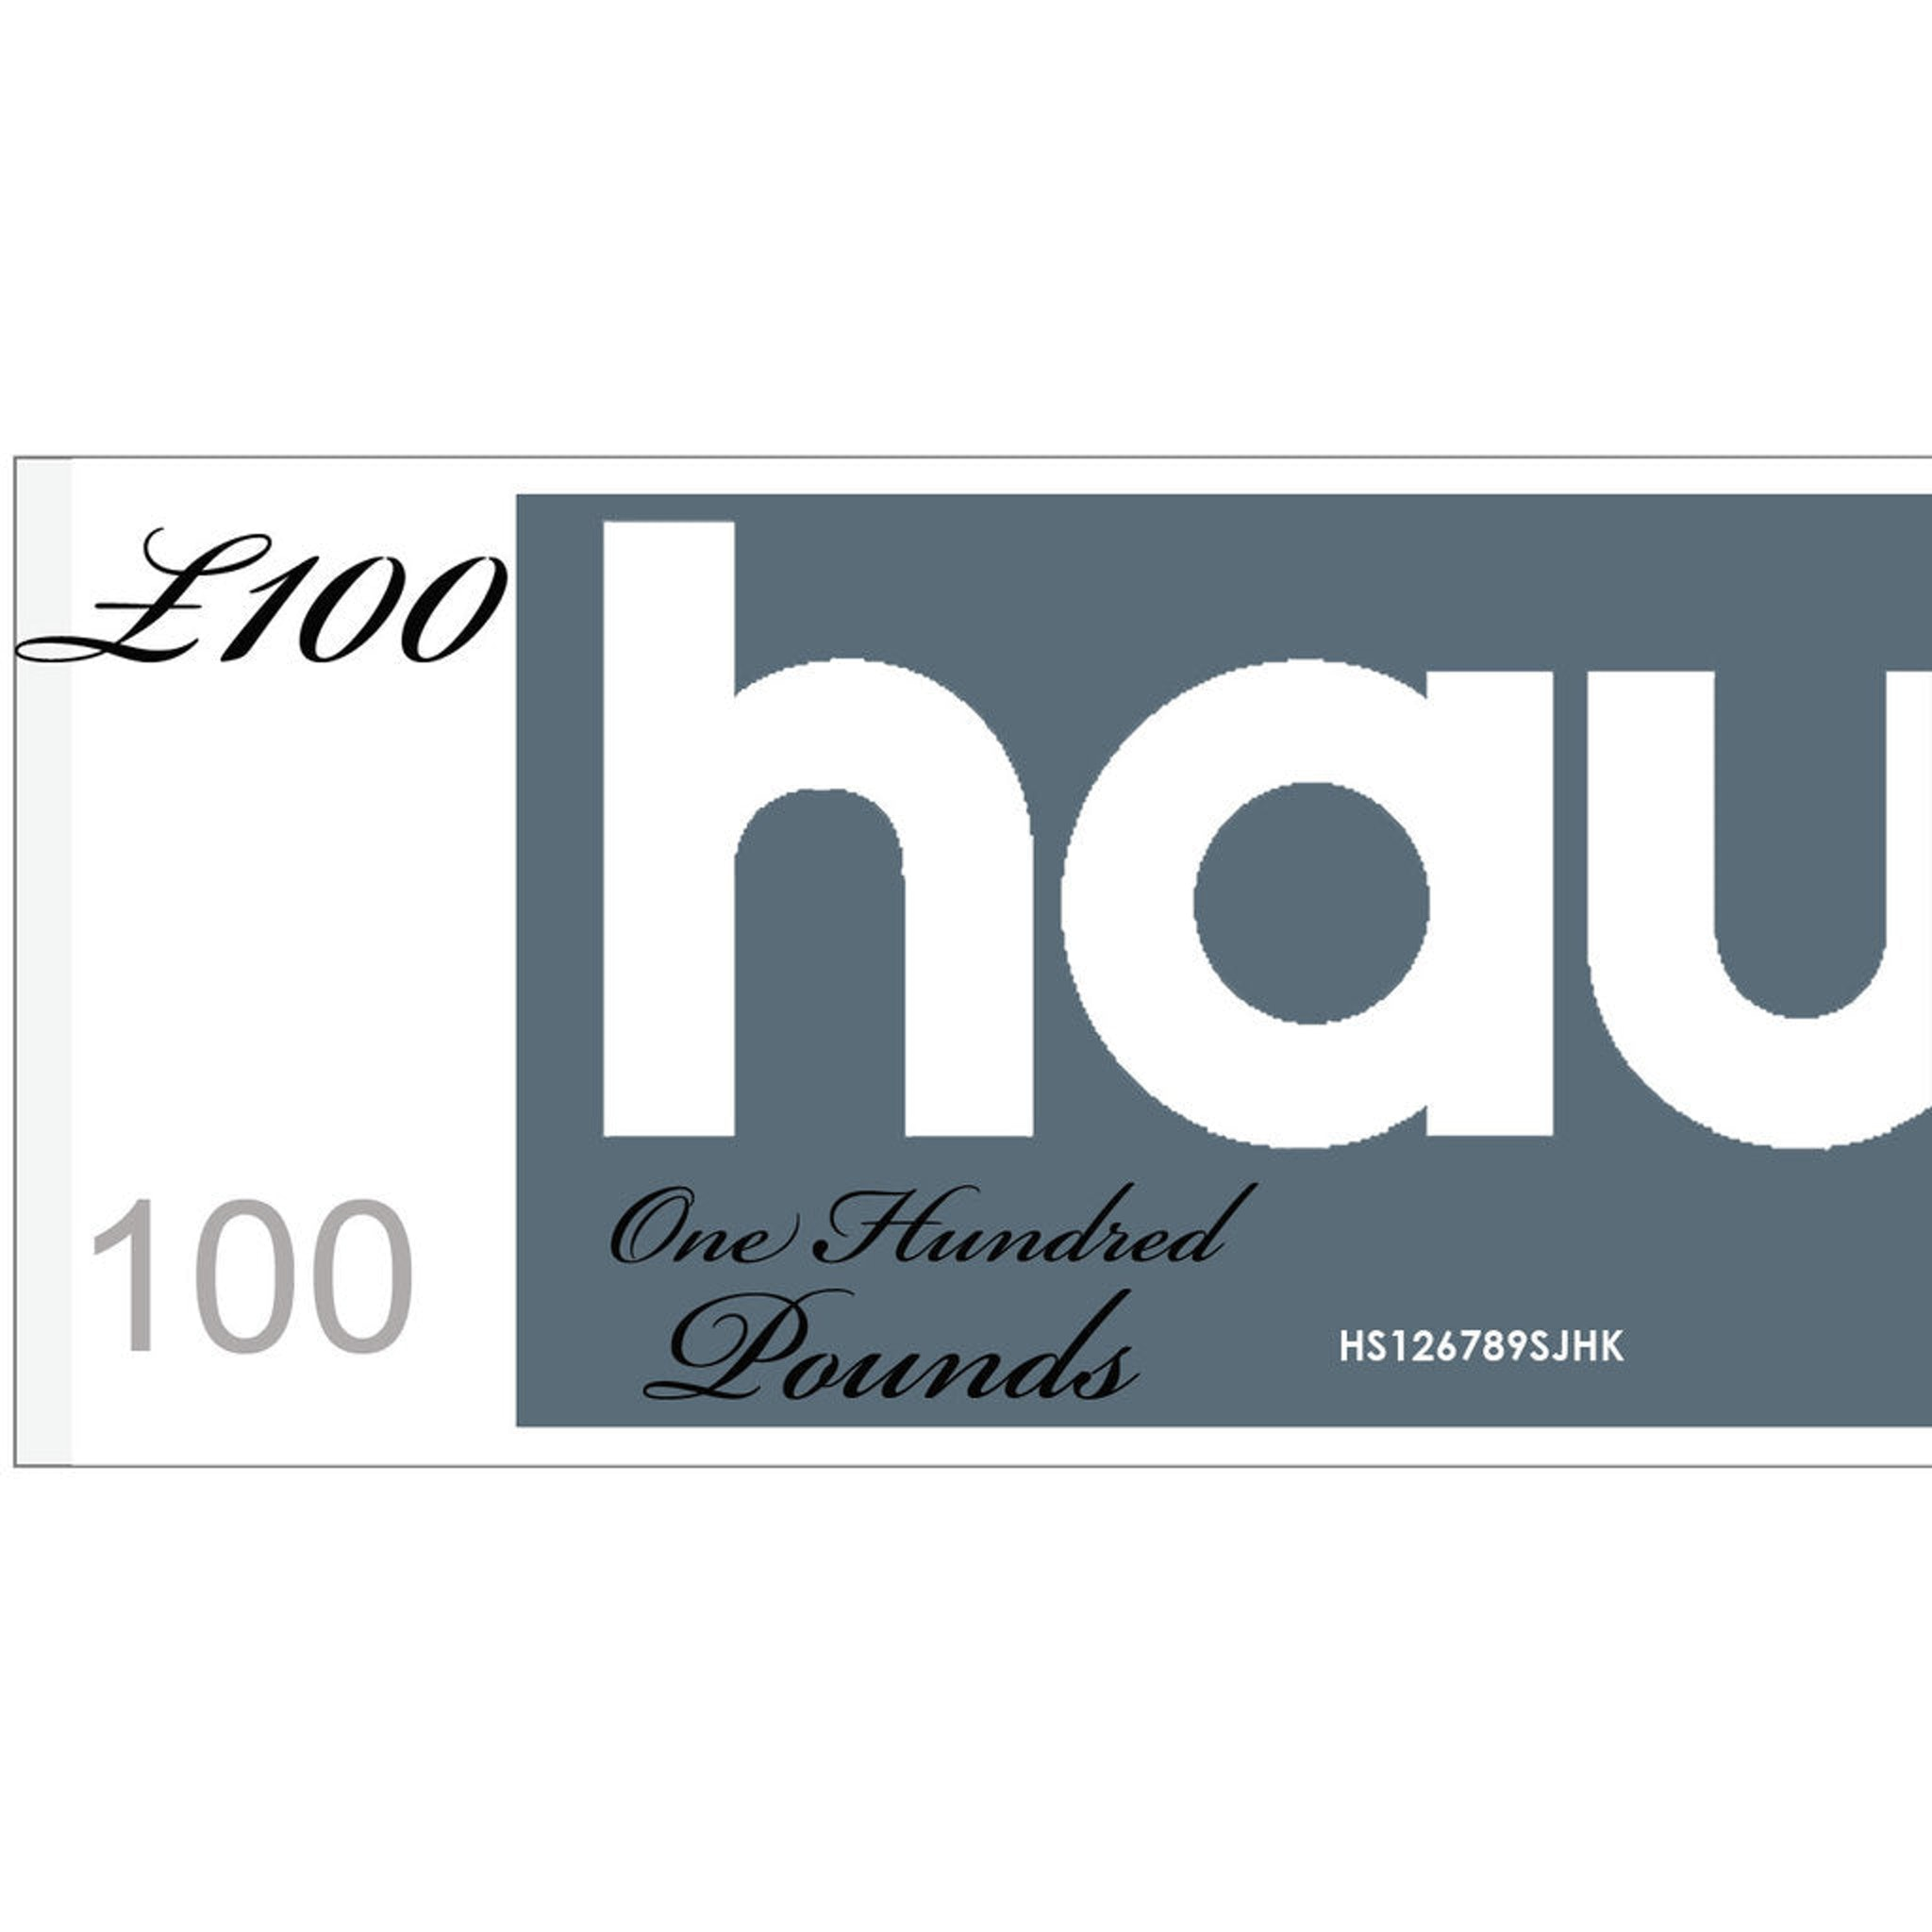 HAUS GIFT VOUCHER - VALUE £100 - for Christopher and Stephen